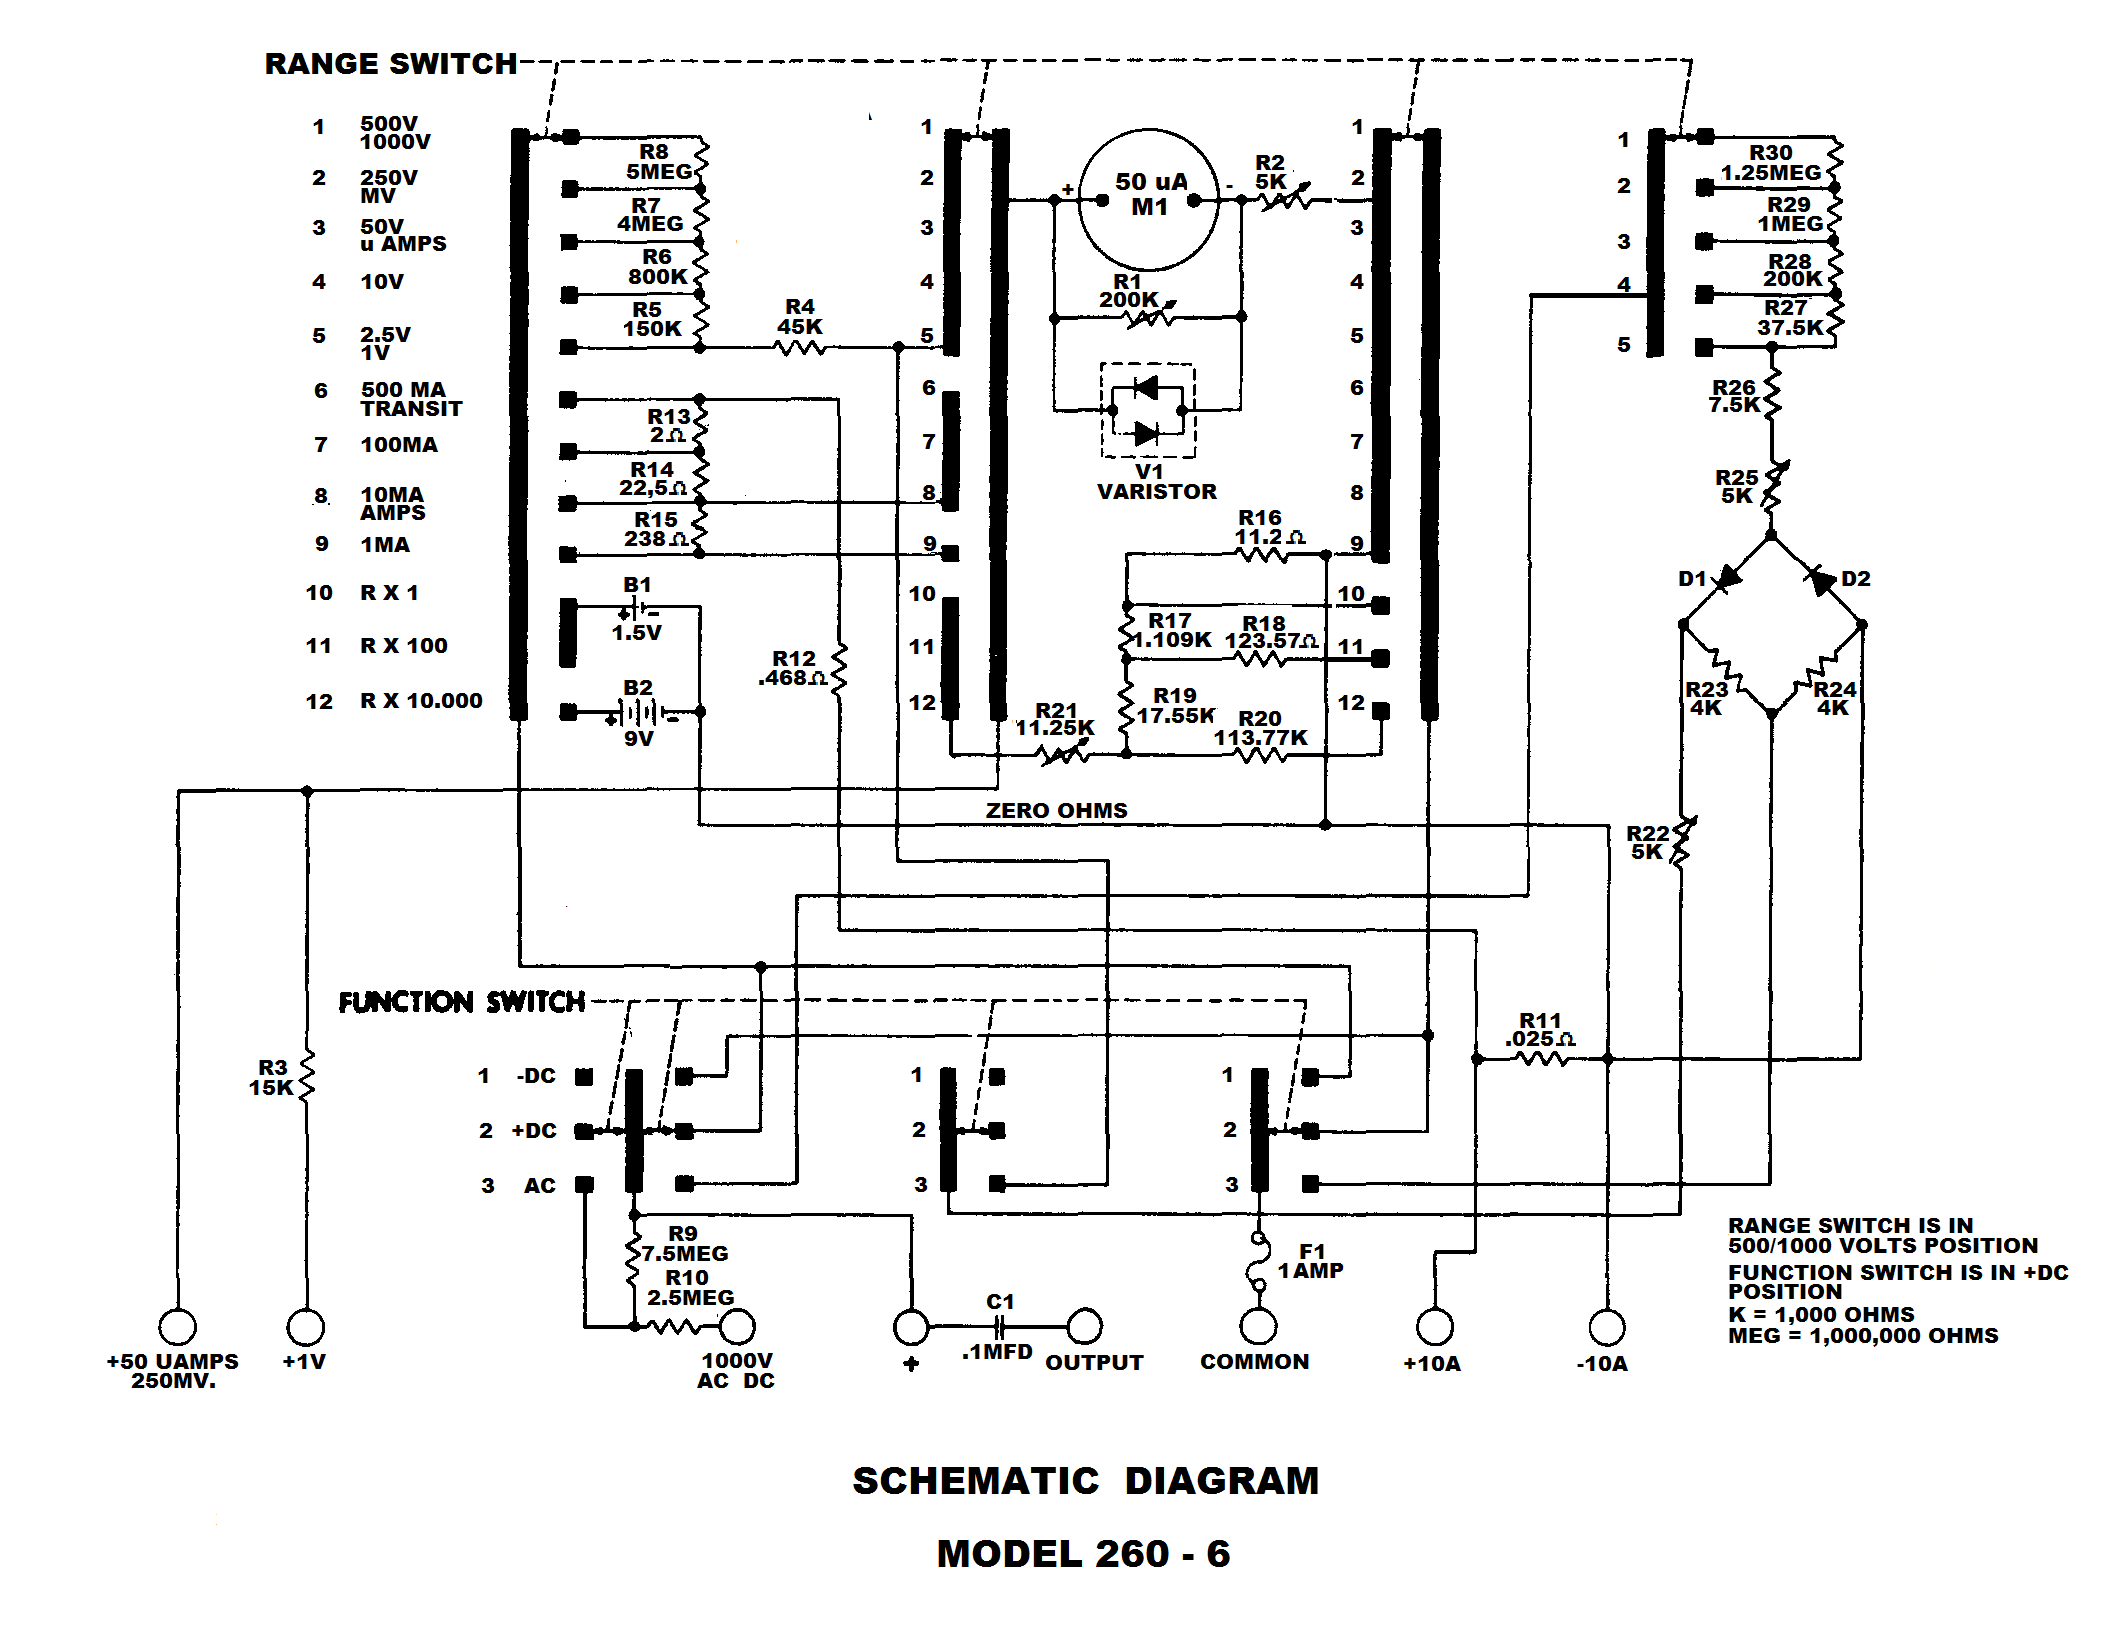 [WRG-4699] Electrical Wiring Diagrams For A Simpson 260